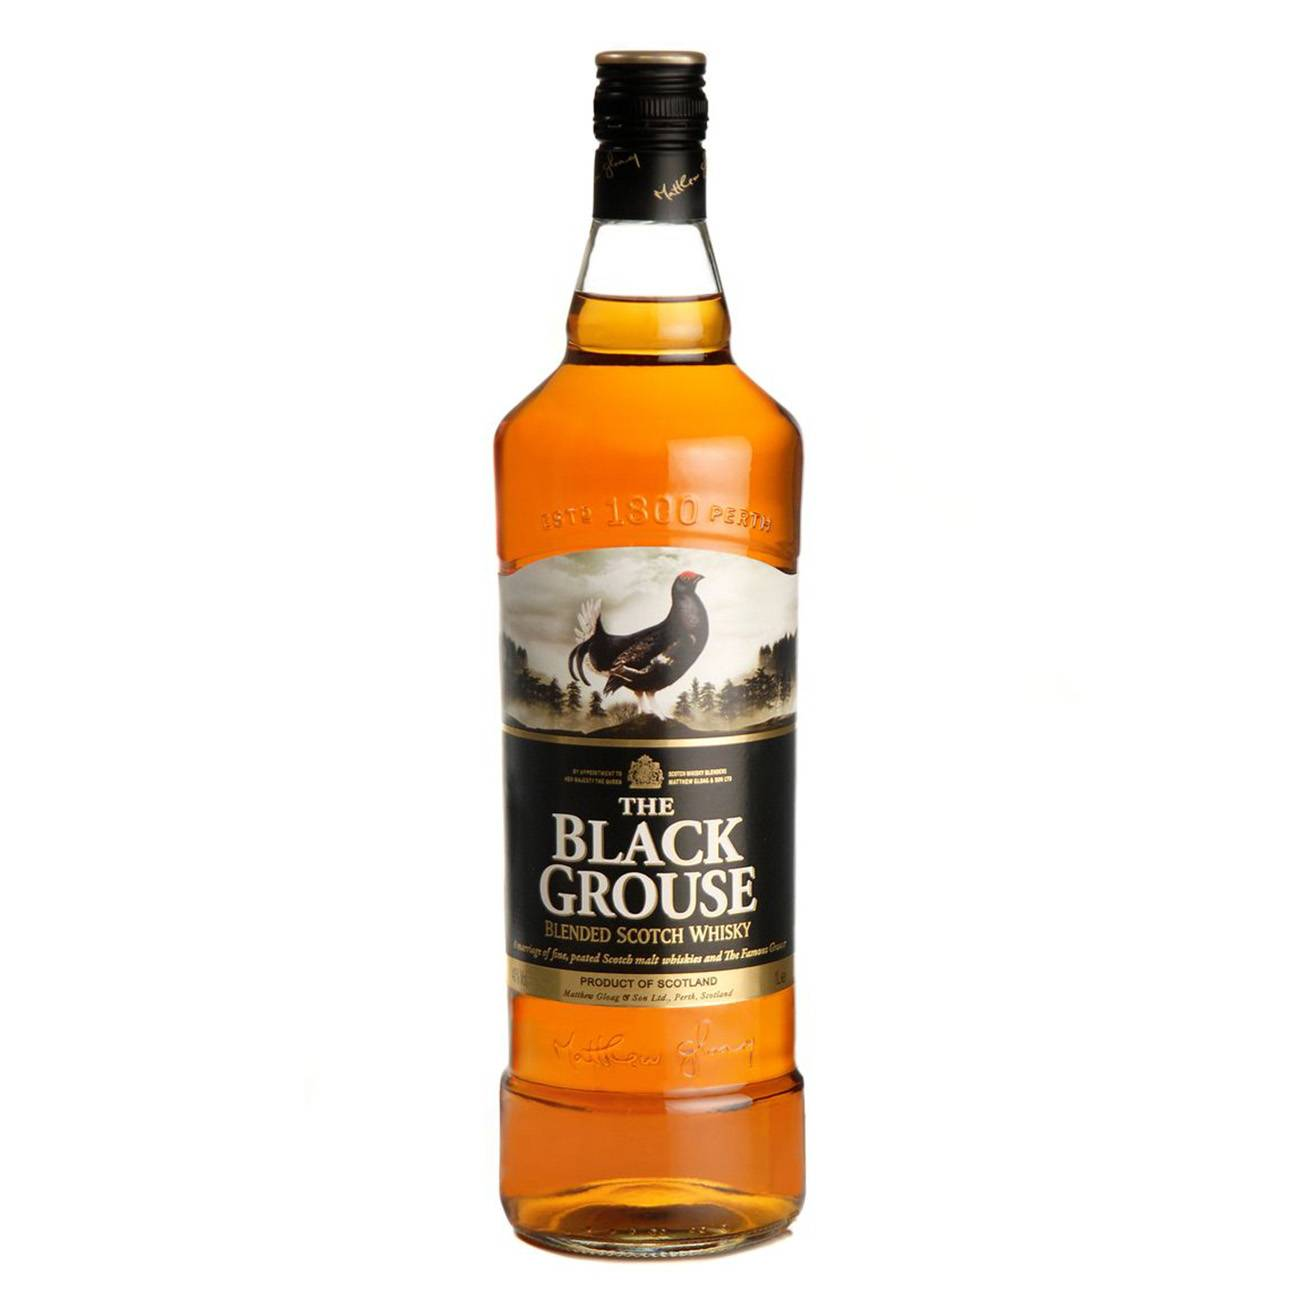 Whisky scotian, THE BLACK GROUSE 1000 ML, The Famous Grouse